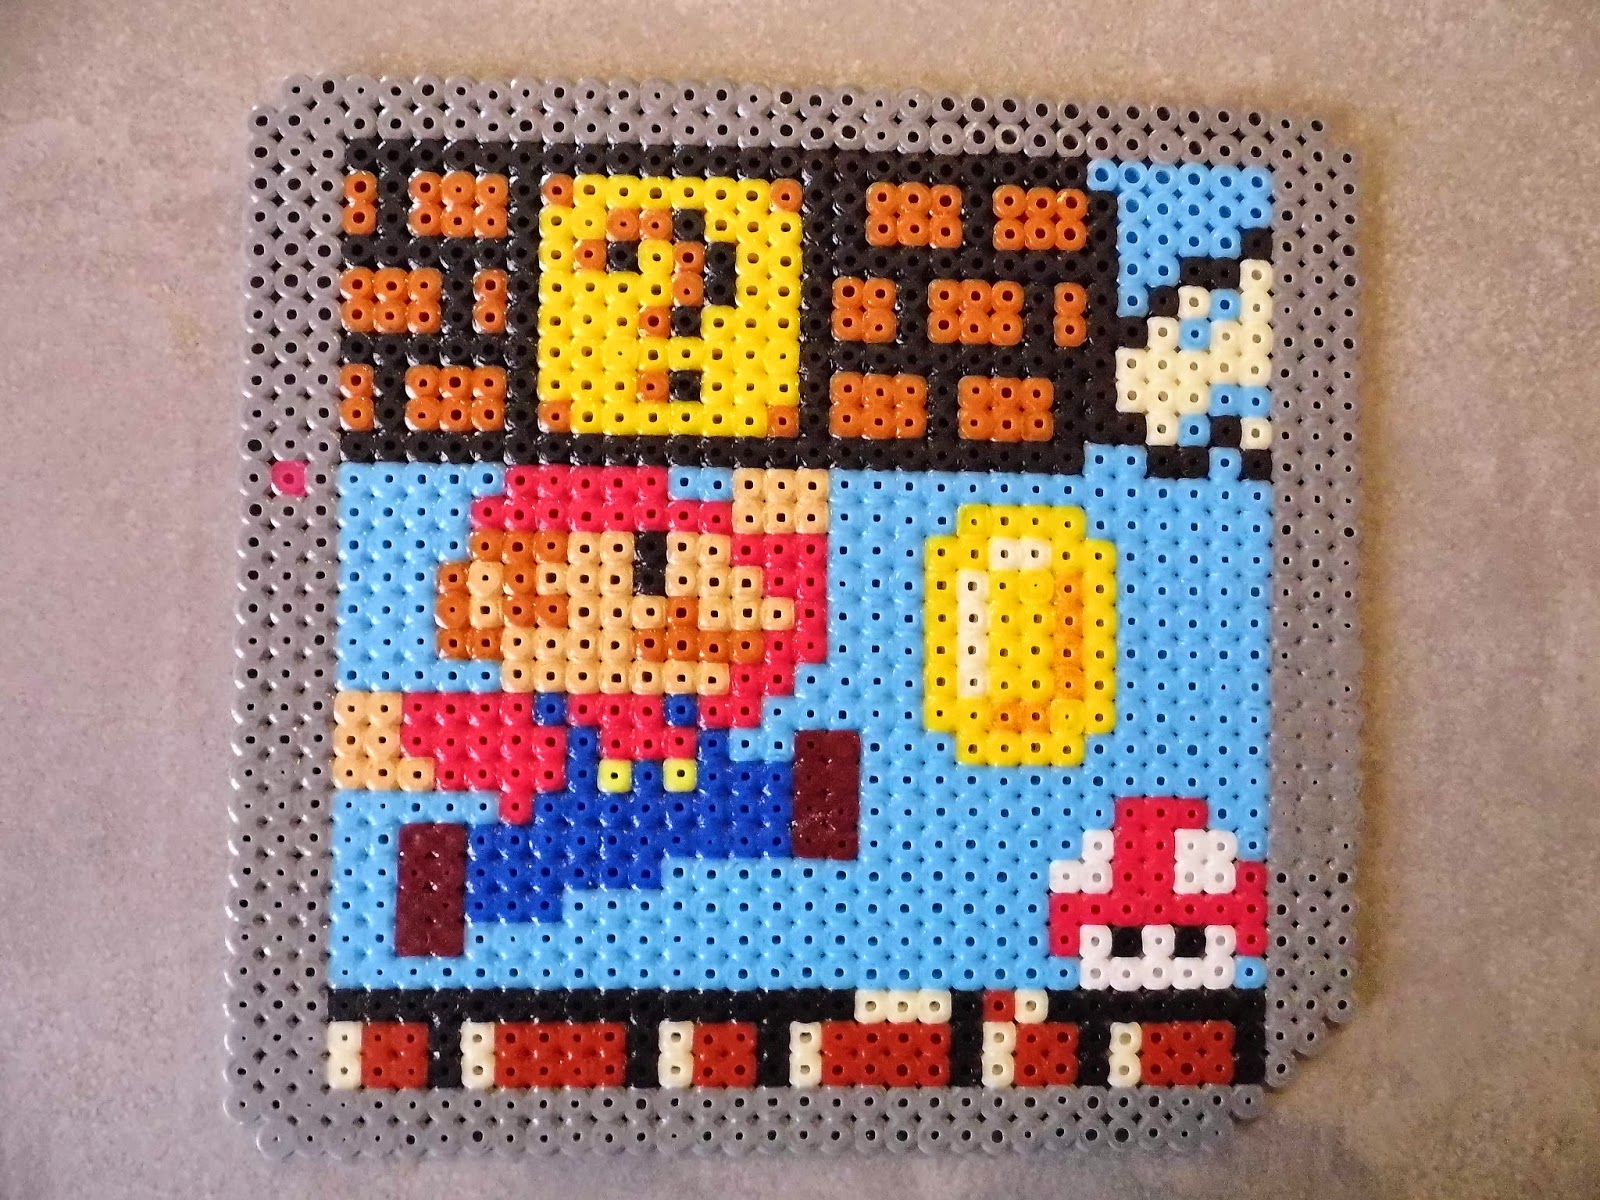 pixel art en perle hama univers mario en hama beads. Black Bedroom Furniture Sets. Home Design Ideas